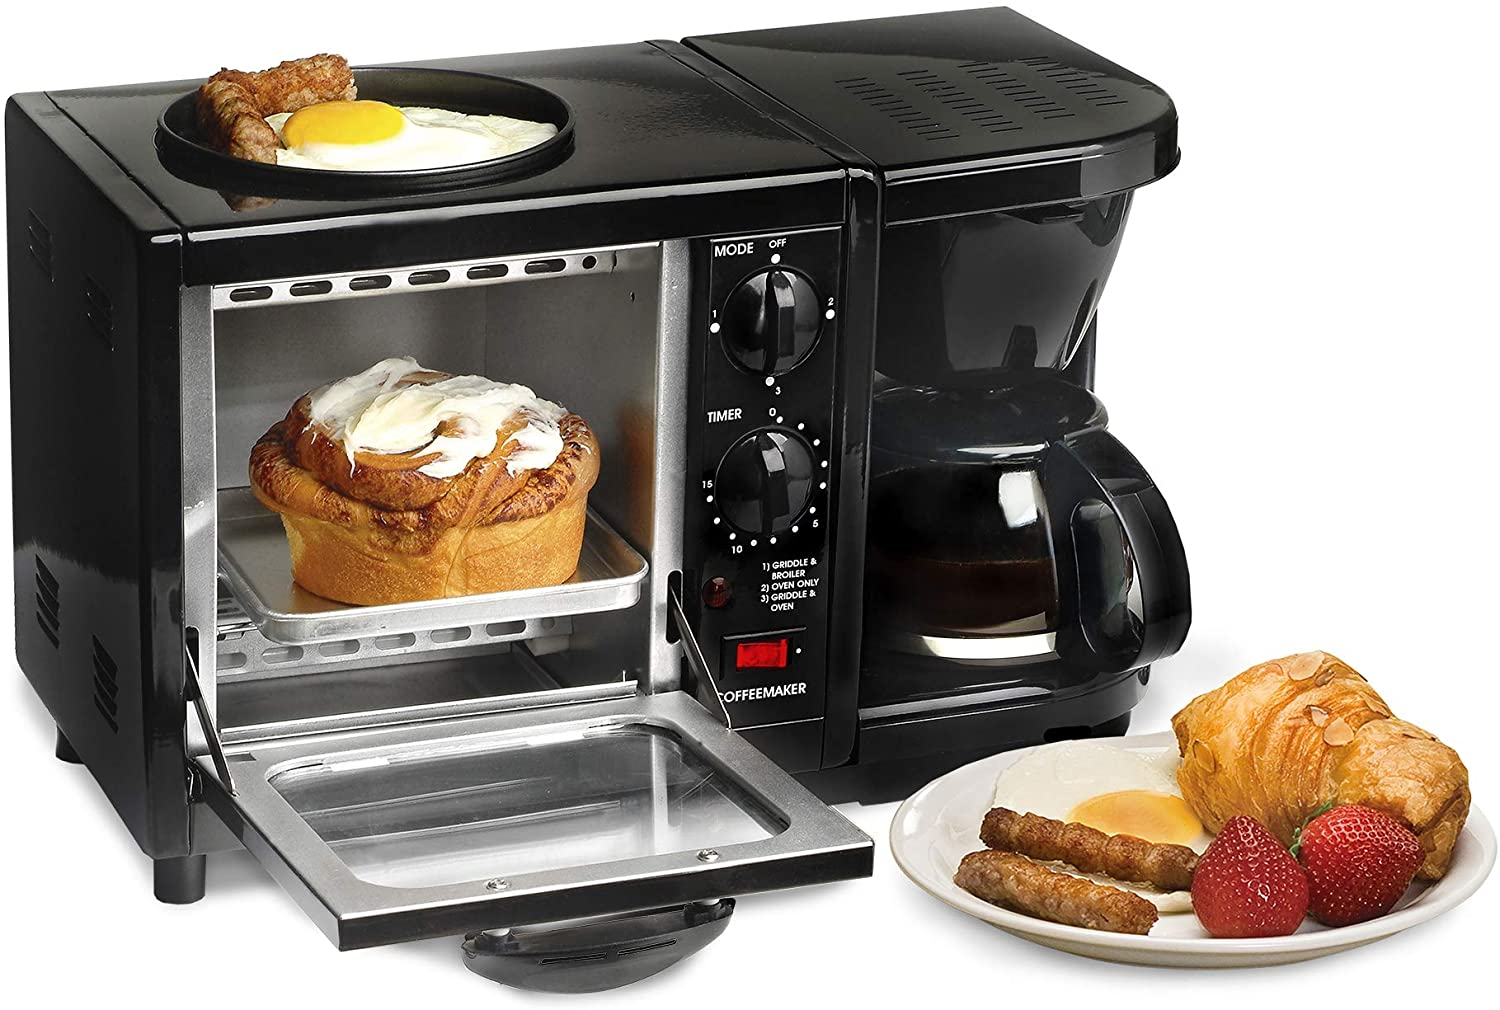 3 in 1 Toaster Oven/Coffee Maker/Griddle